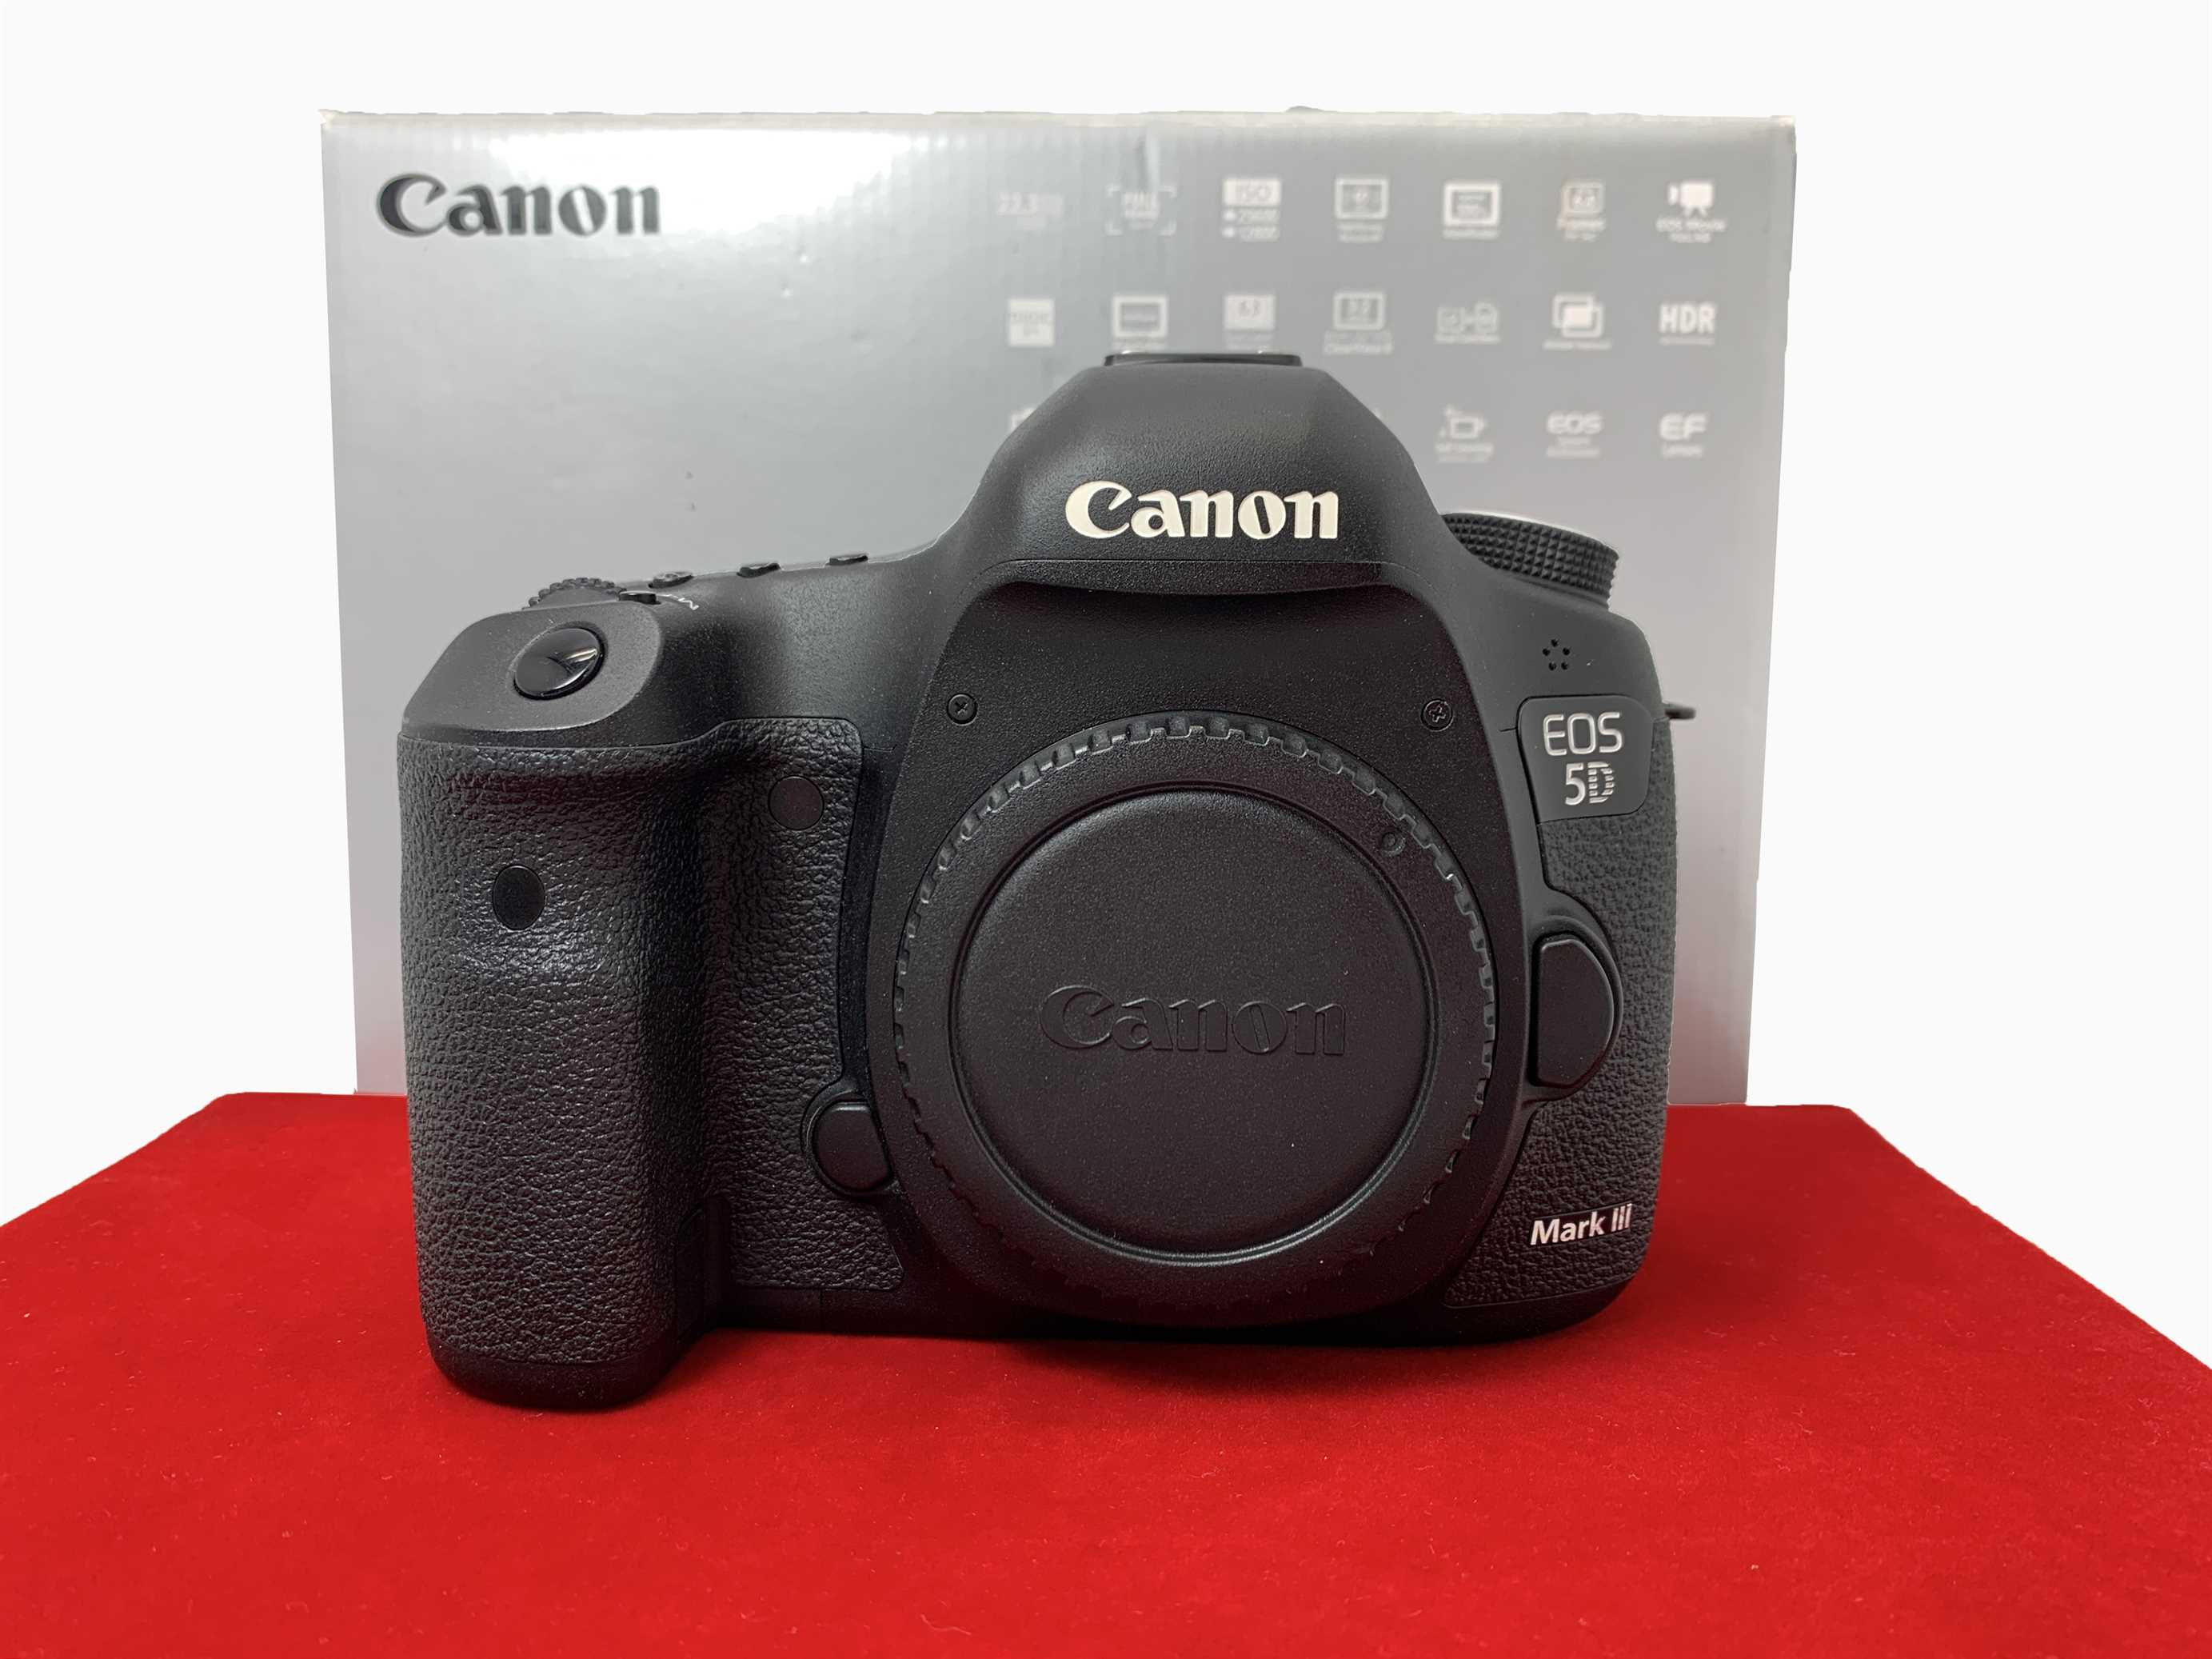 [USED-PJ33] Canon EOS 5D Mark III Camera (SC:15K), 95% Like New Condition (S/N:038023004233)